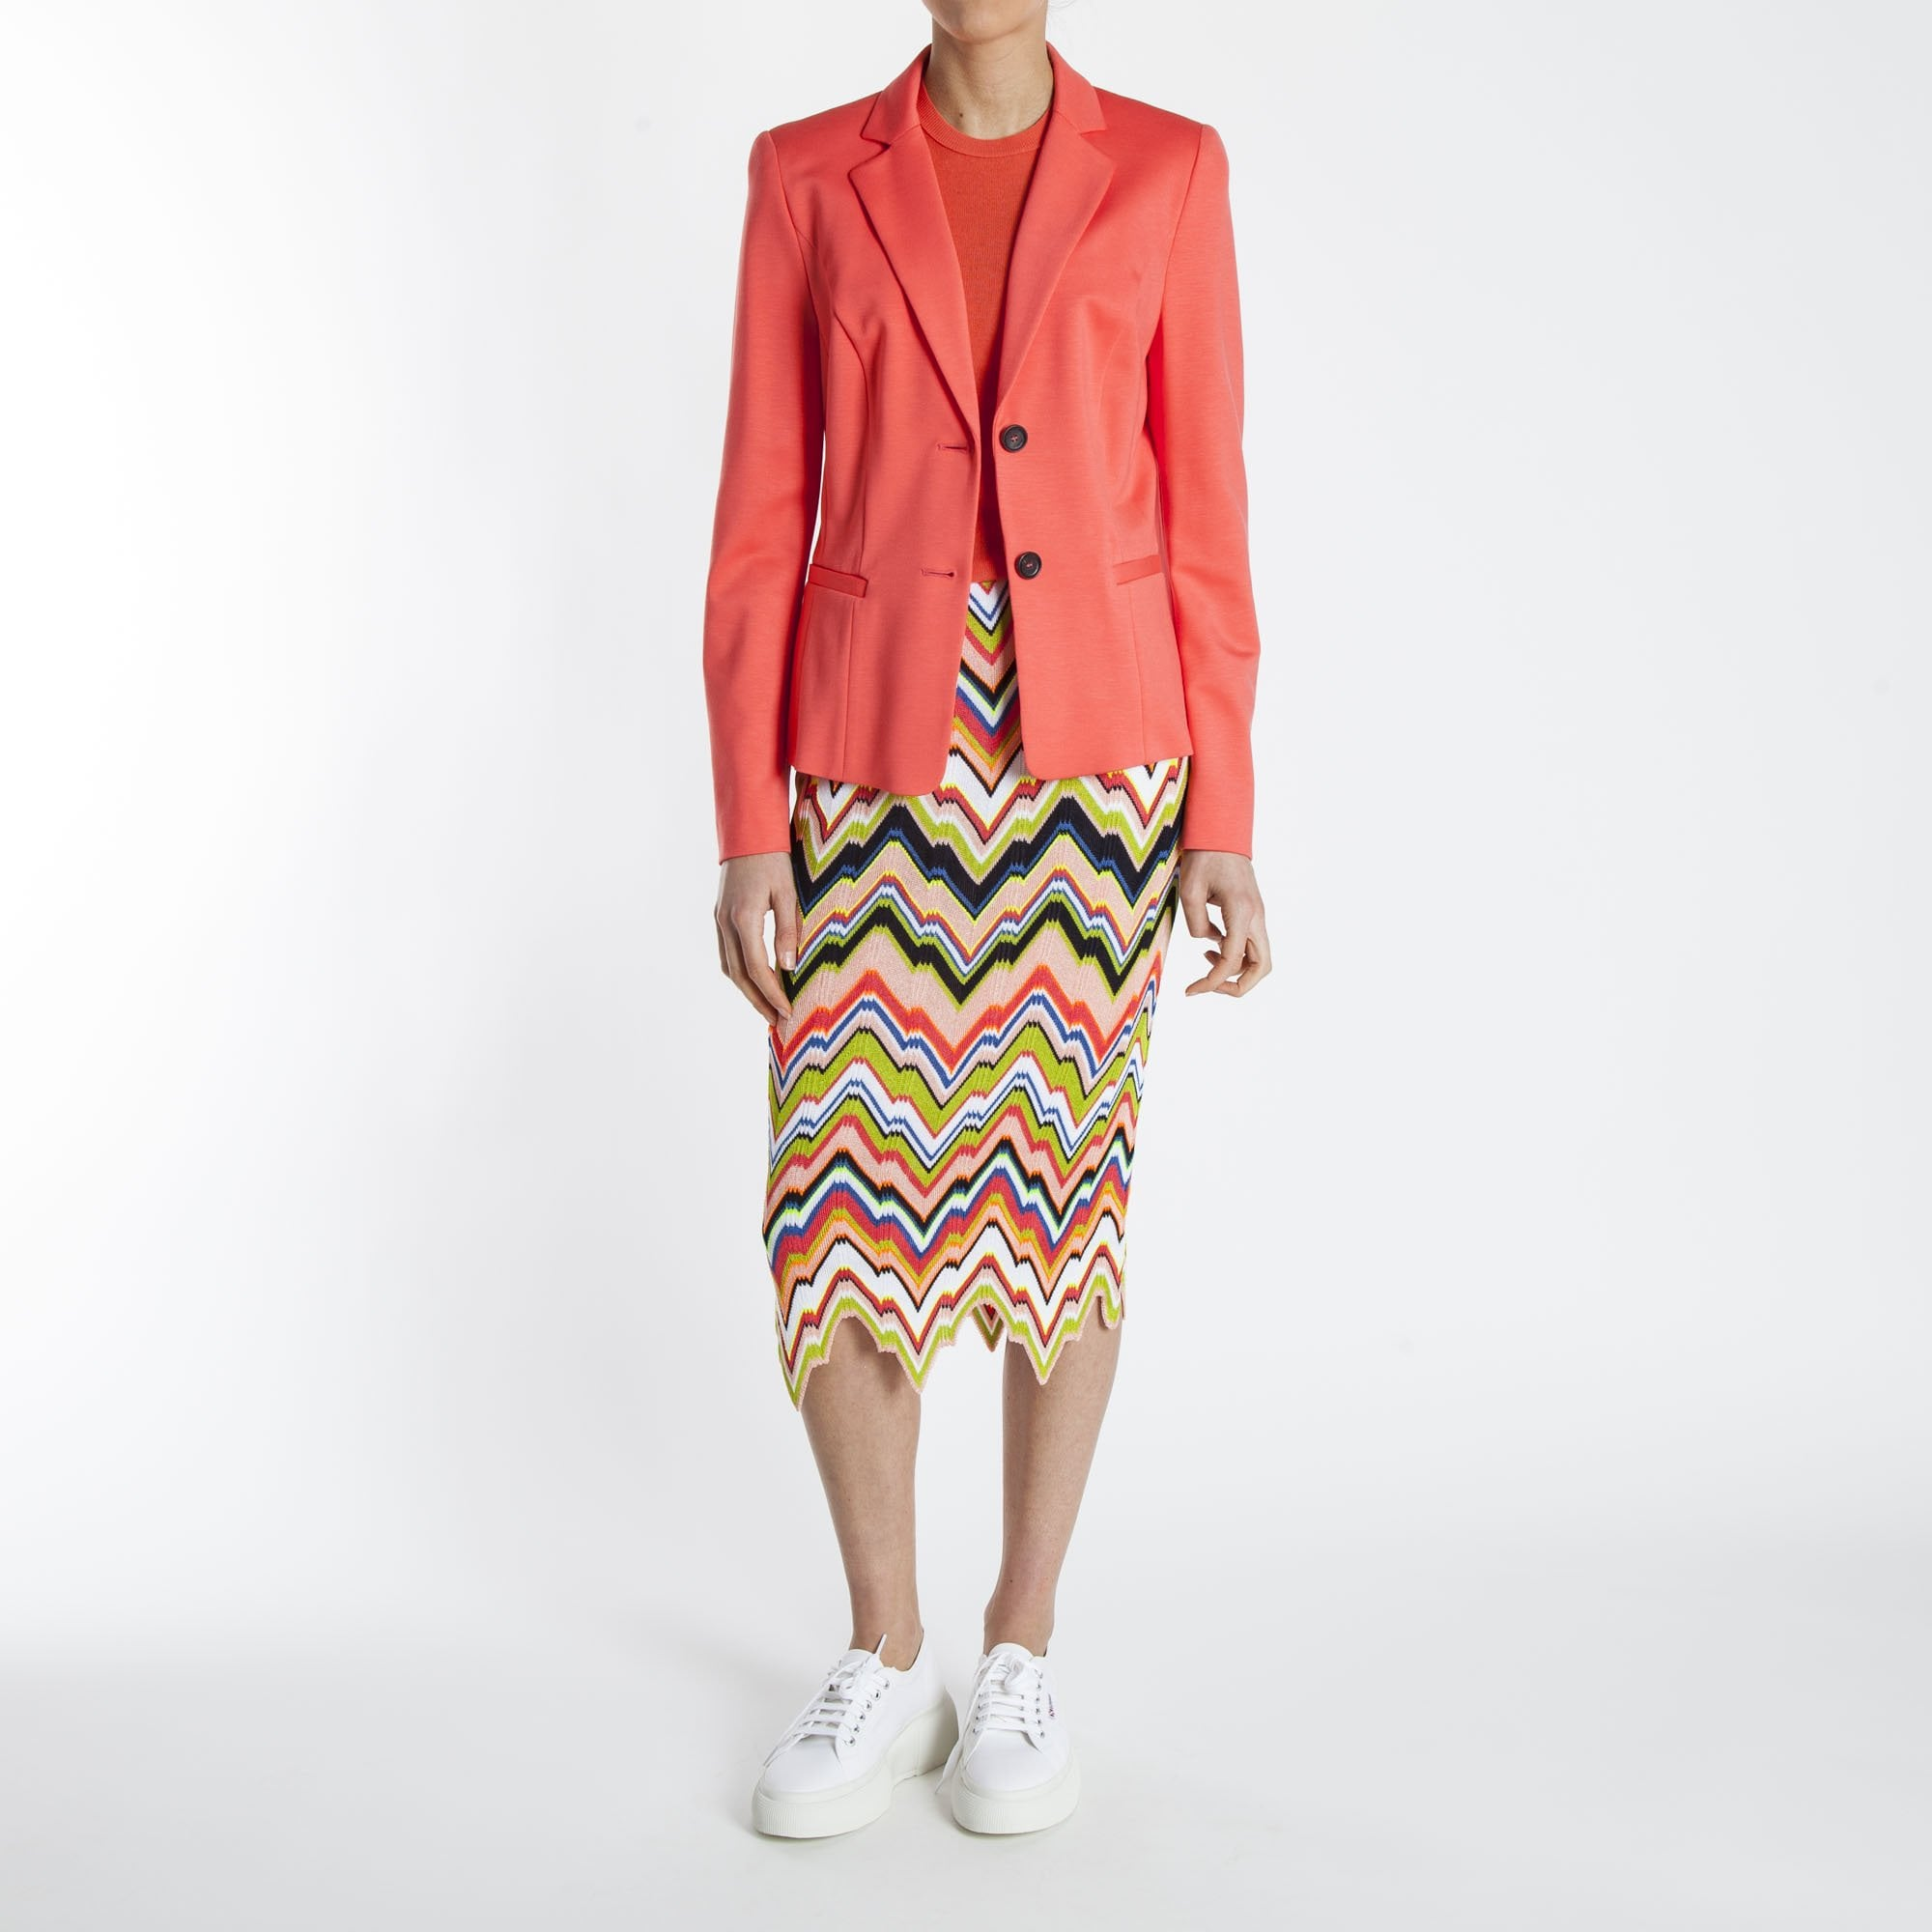 Responsible Marc Cain Women's Clothing Clothes, Shoes & Accessories